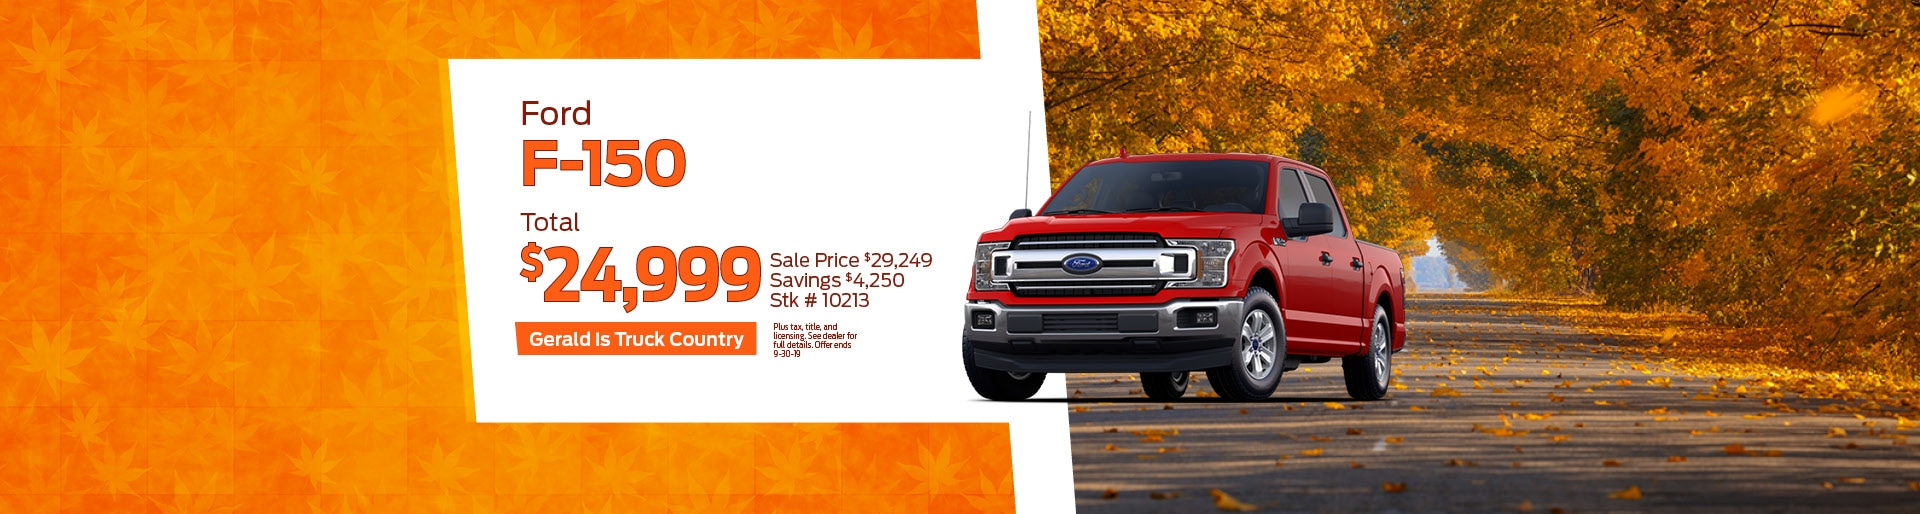 New and Used Ford dealership in North Aurora | Gerald Ford